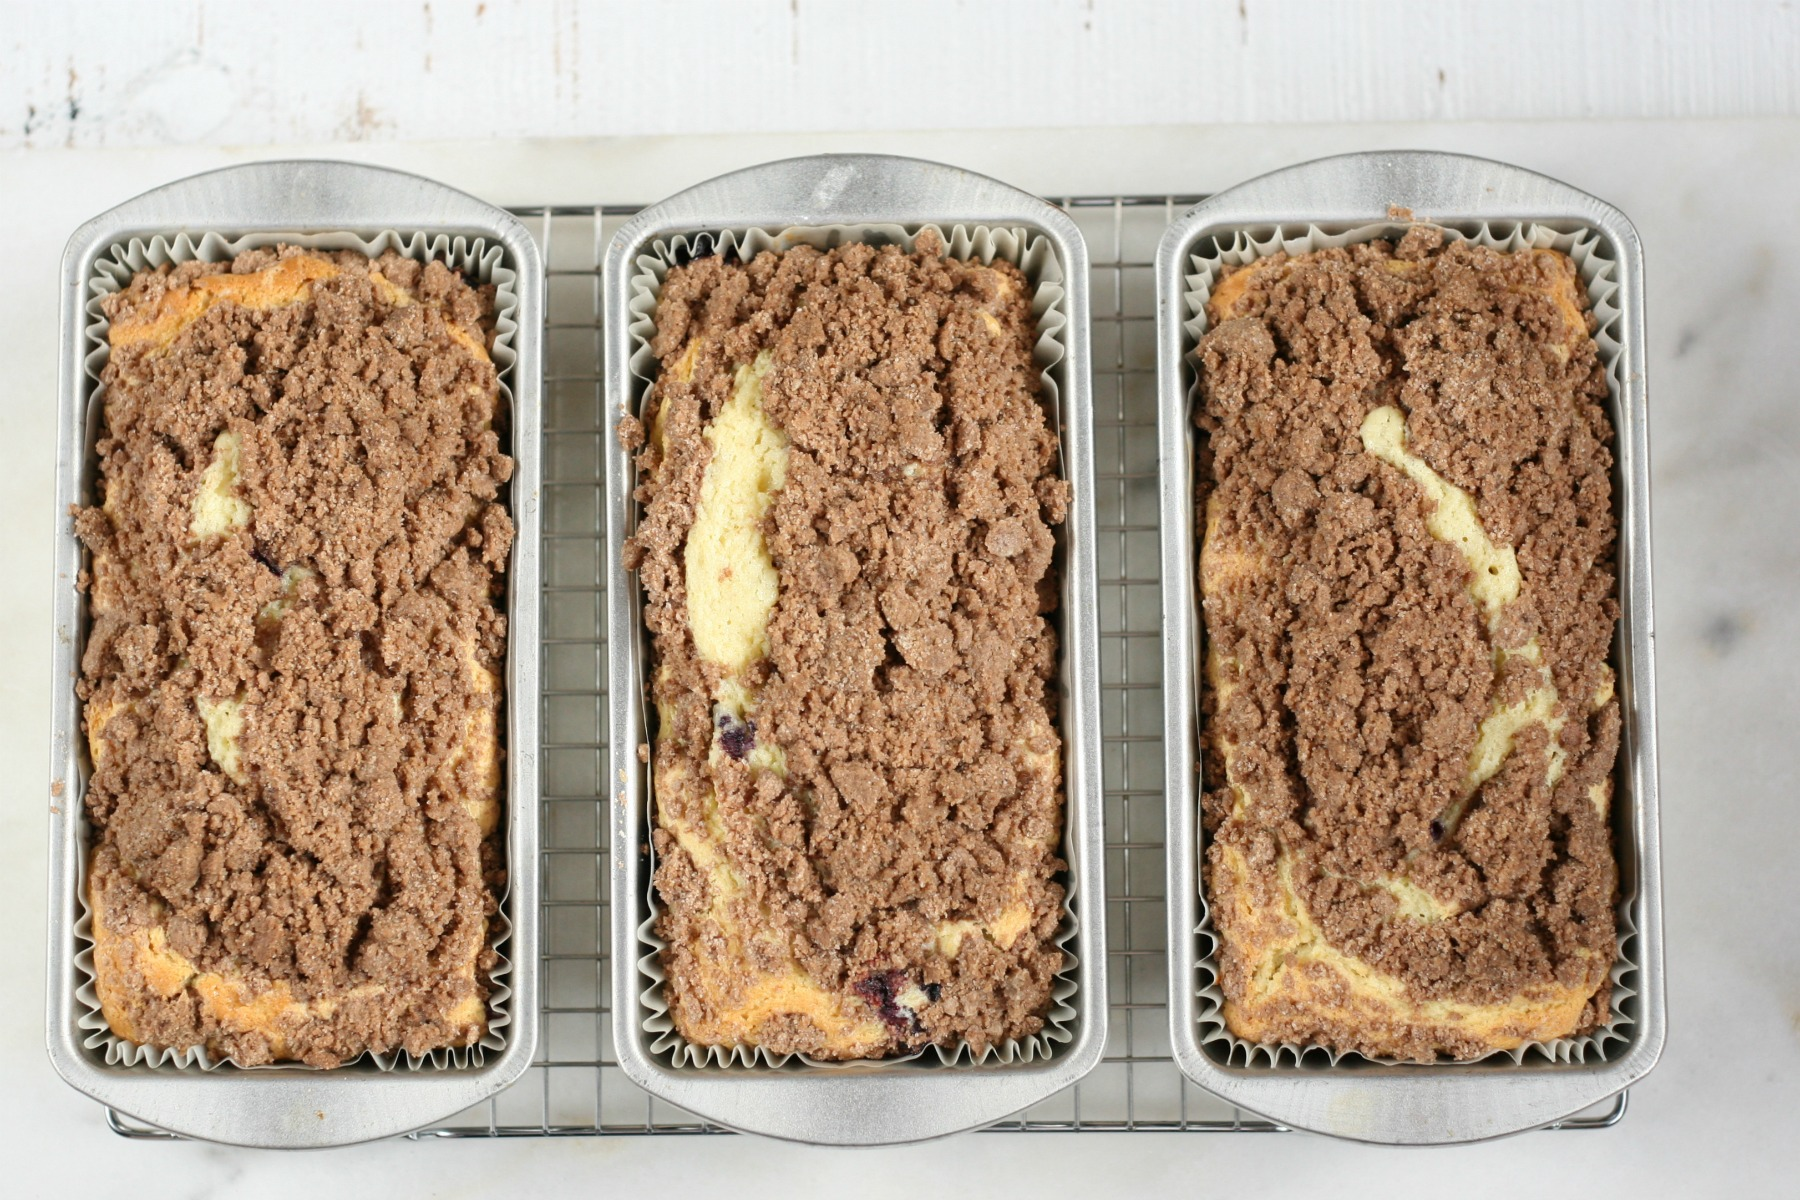 Blueberry Coffee cakes with streusel topping cooling on a baking rack.